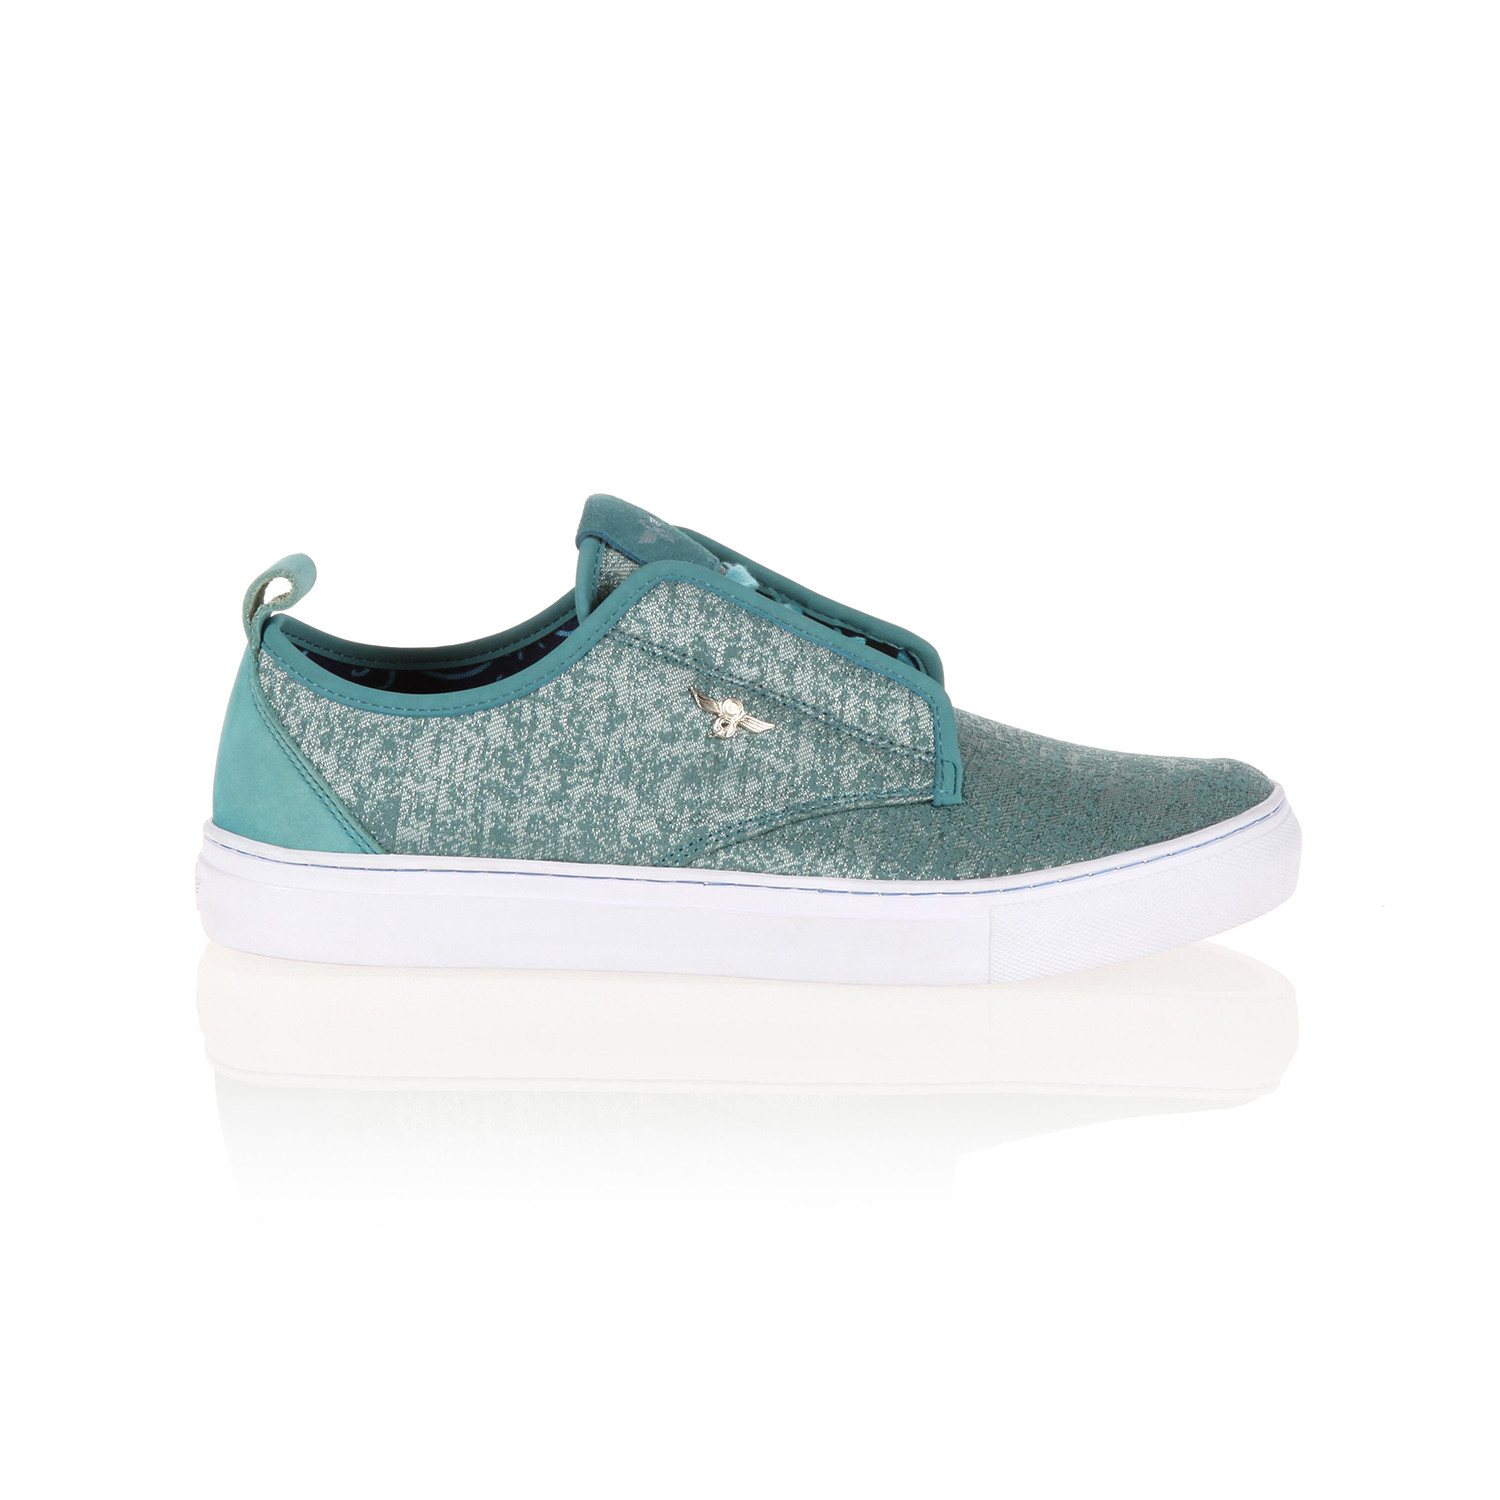 lacava sneaker aqua sea white us 12 creative recreation